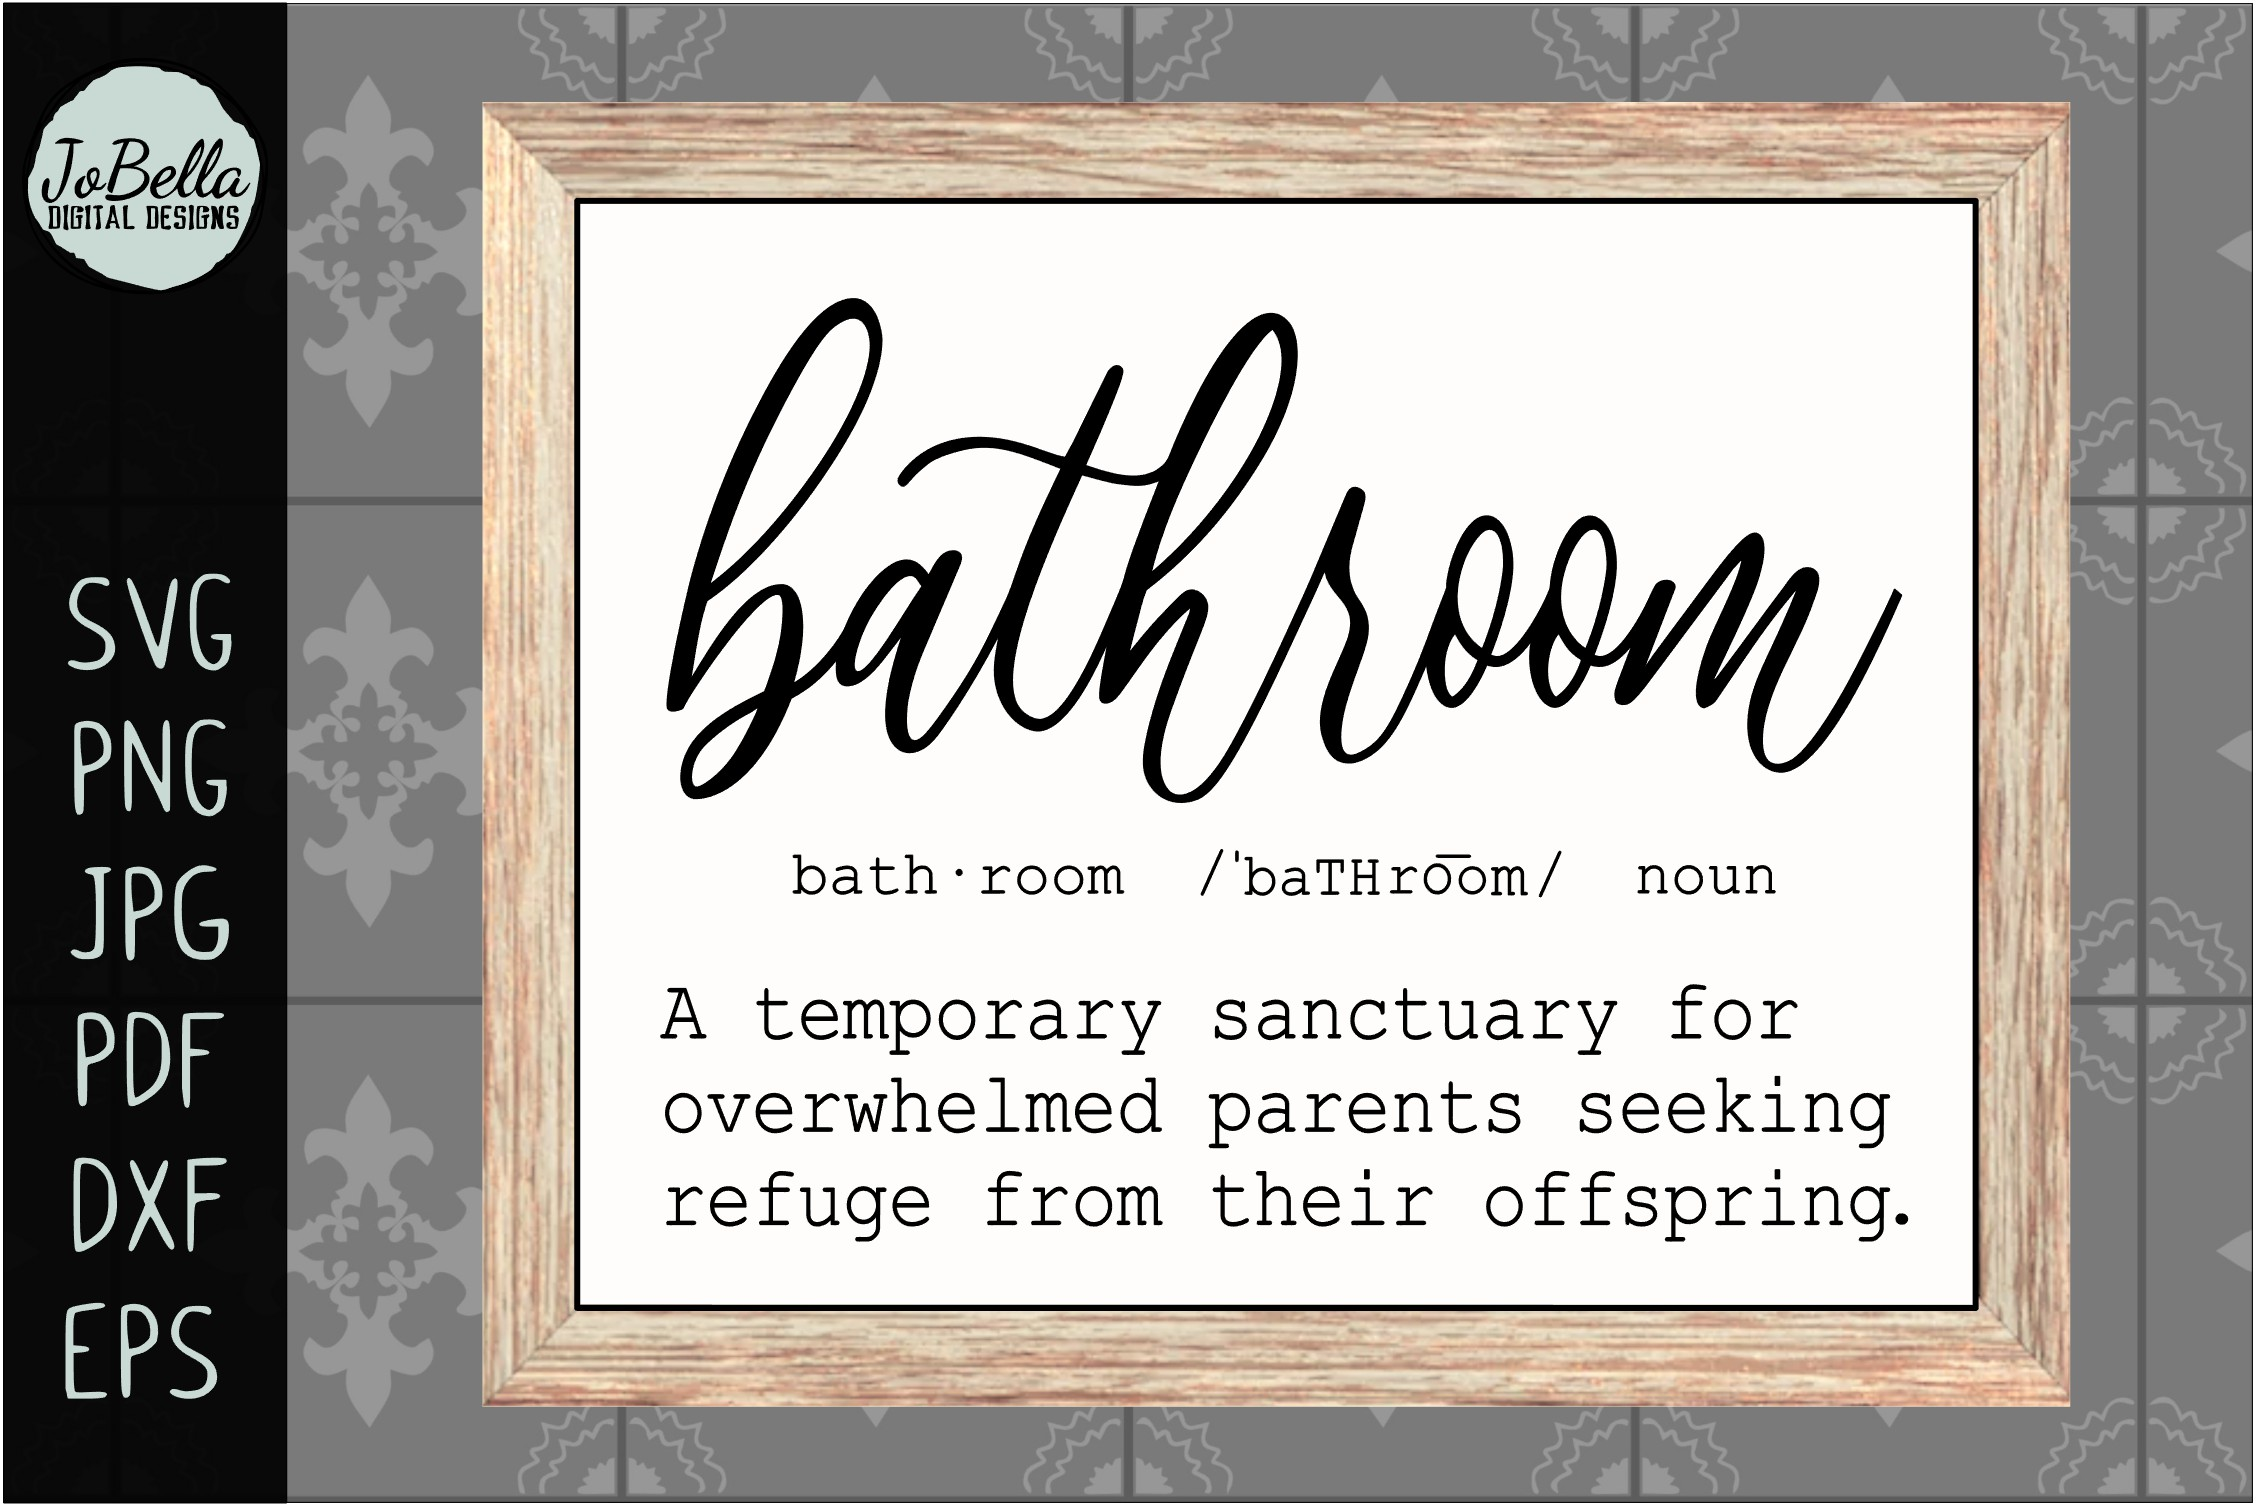 Download Free Funny Bathroom Graphic By Jobella Digital Designs Creative Fabrica for Cricut Explore, Silhouette and other cutting machines.